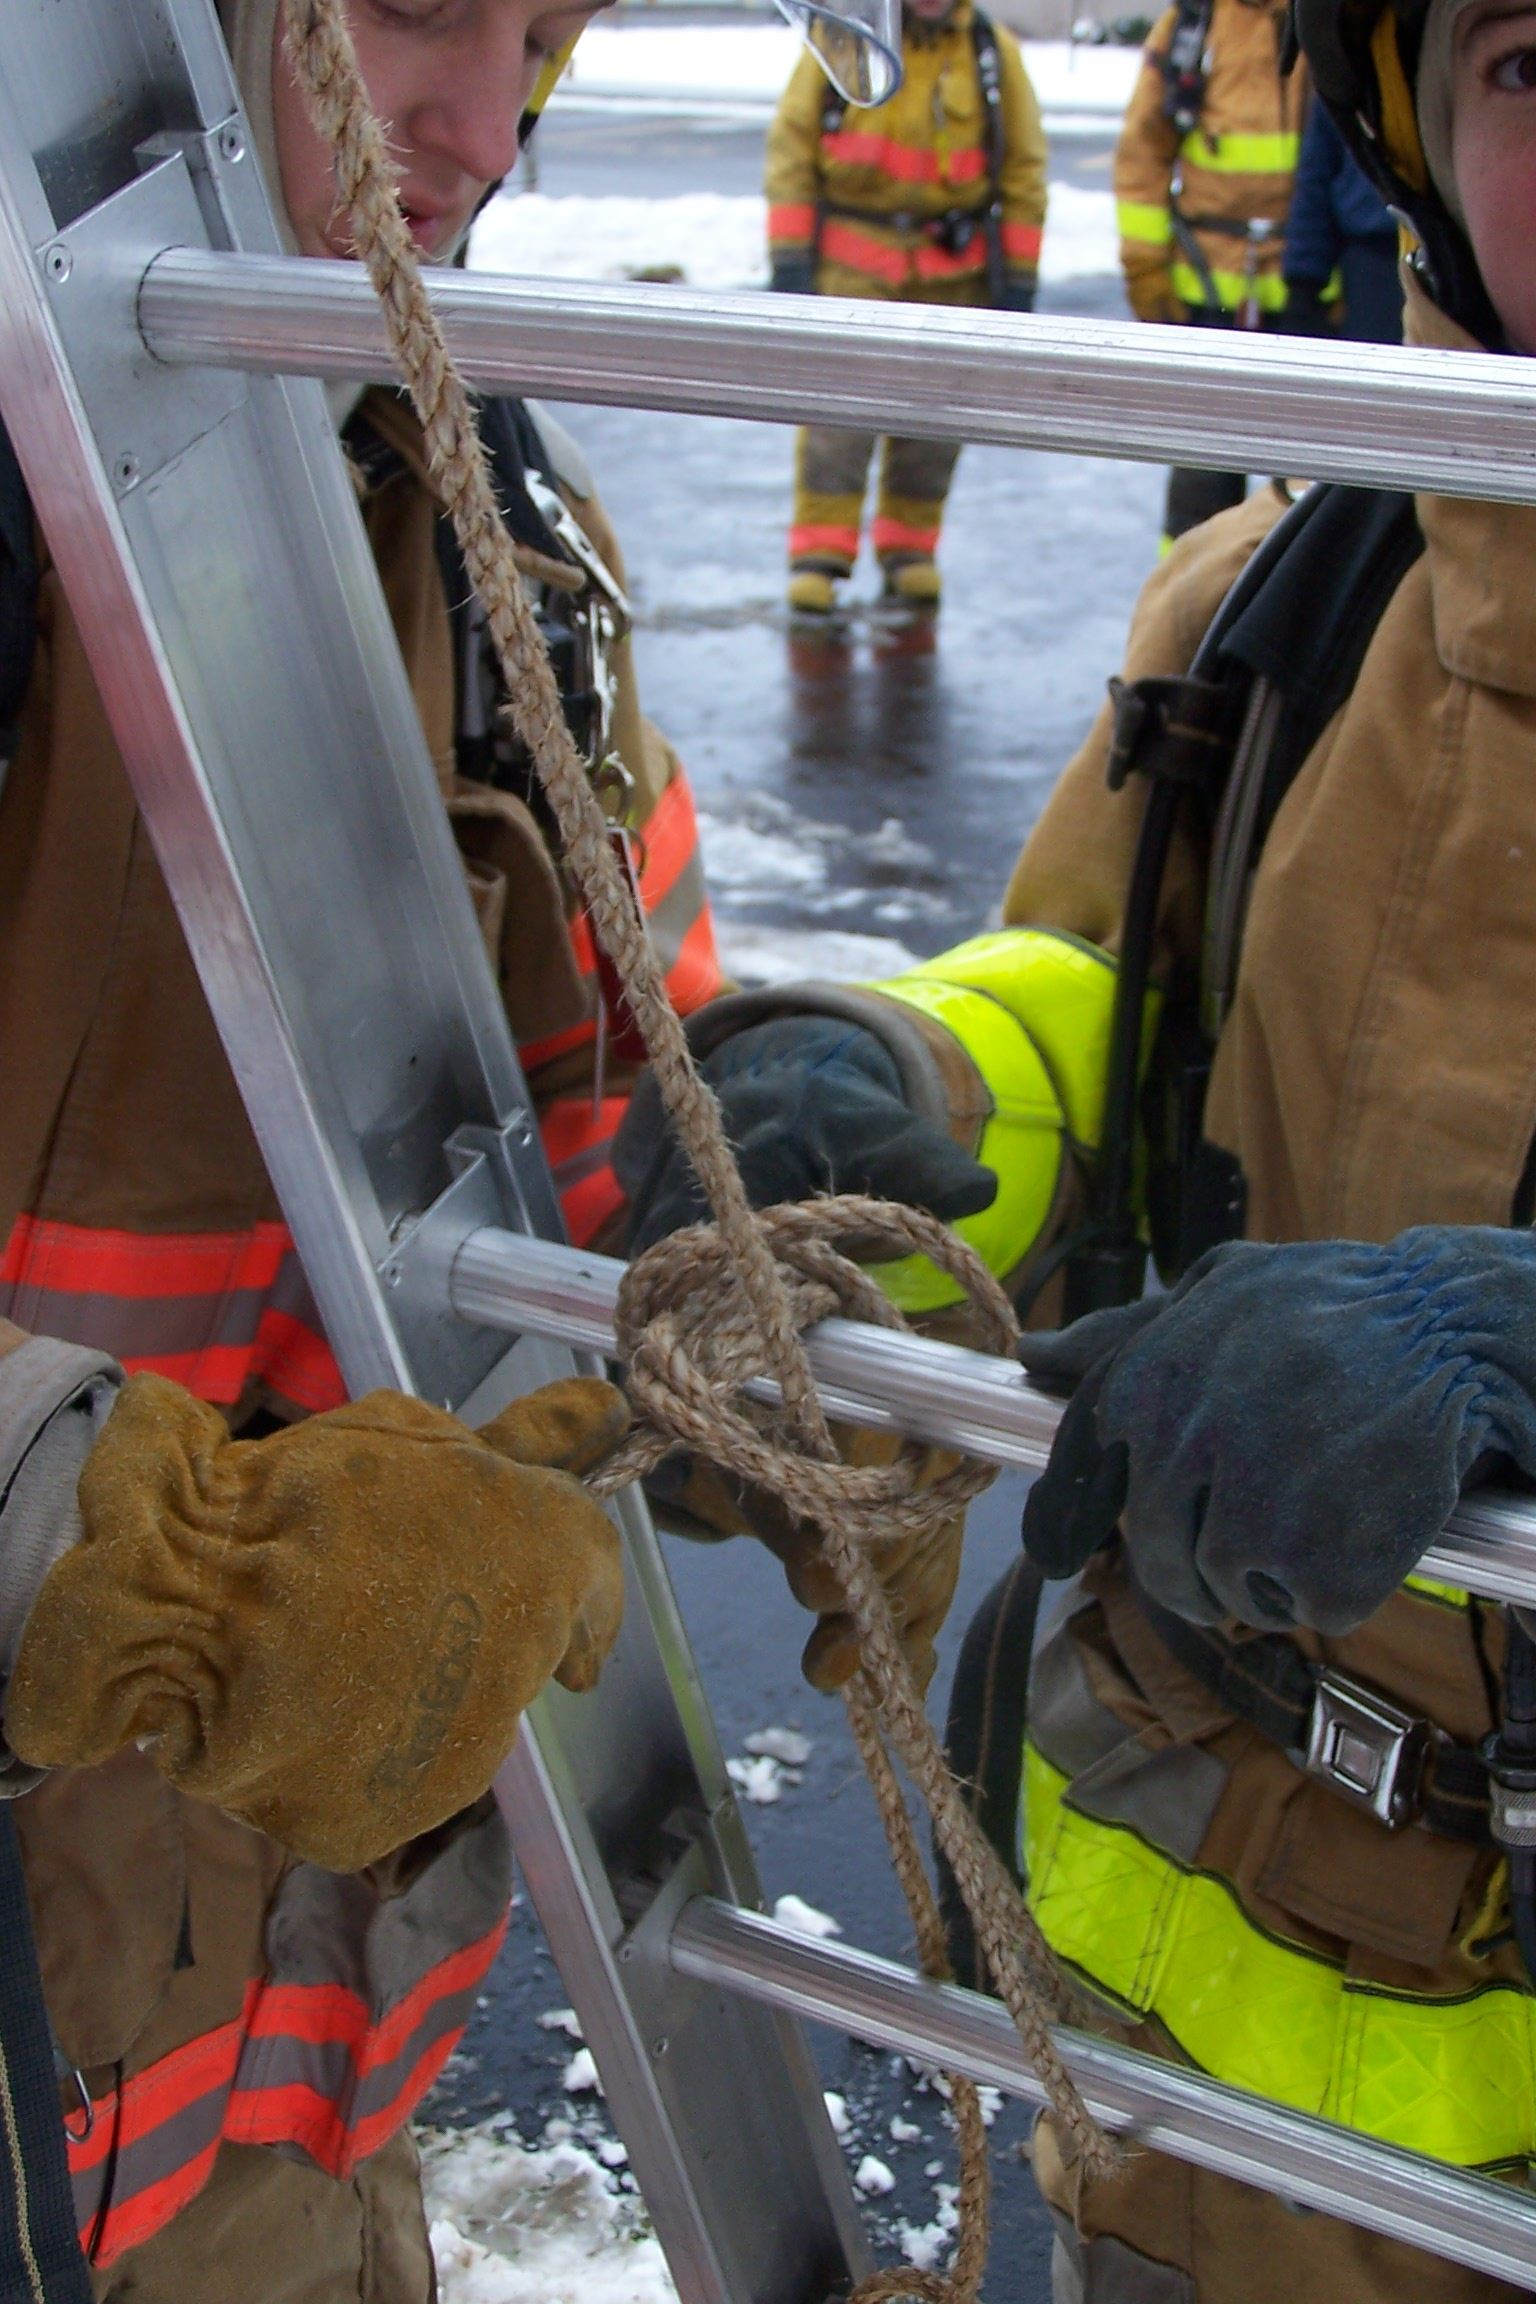 A firefighter ties a knot into a piece of rope around a ladder while another firefighter observes.